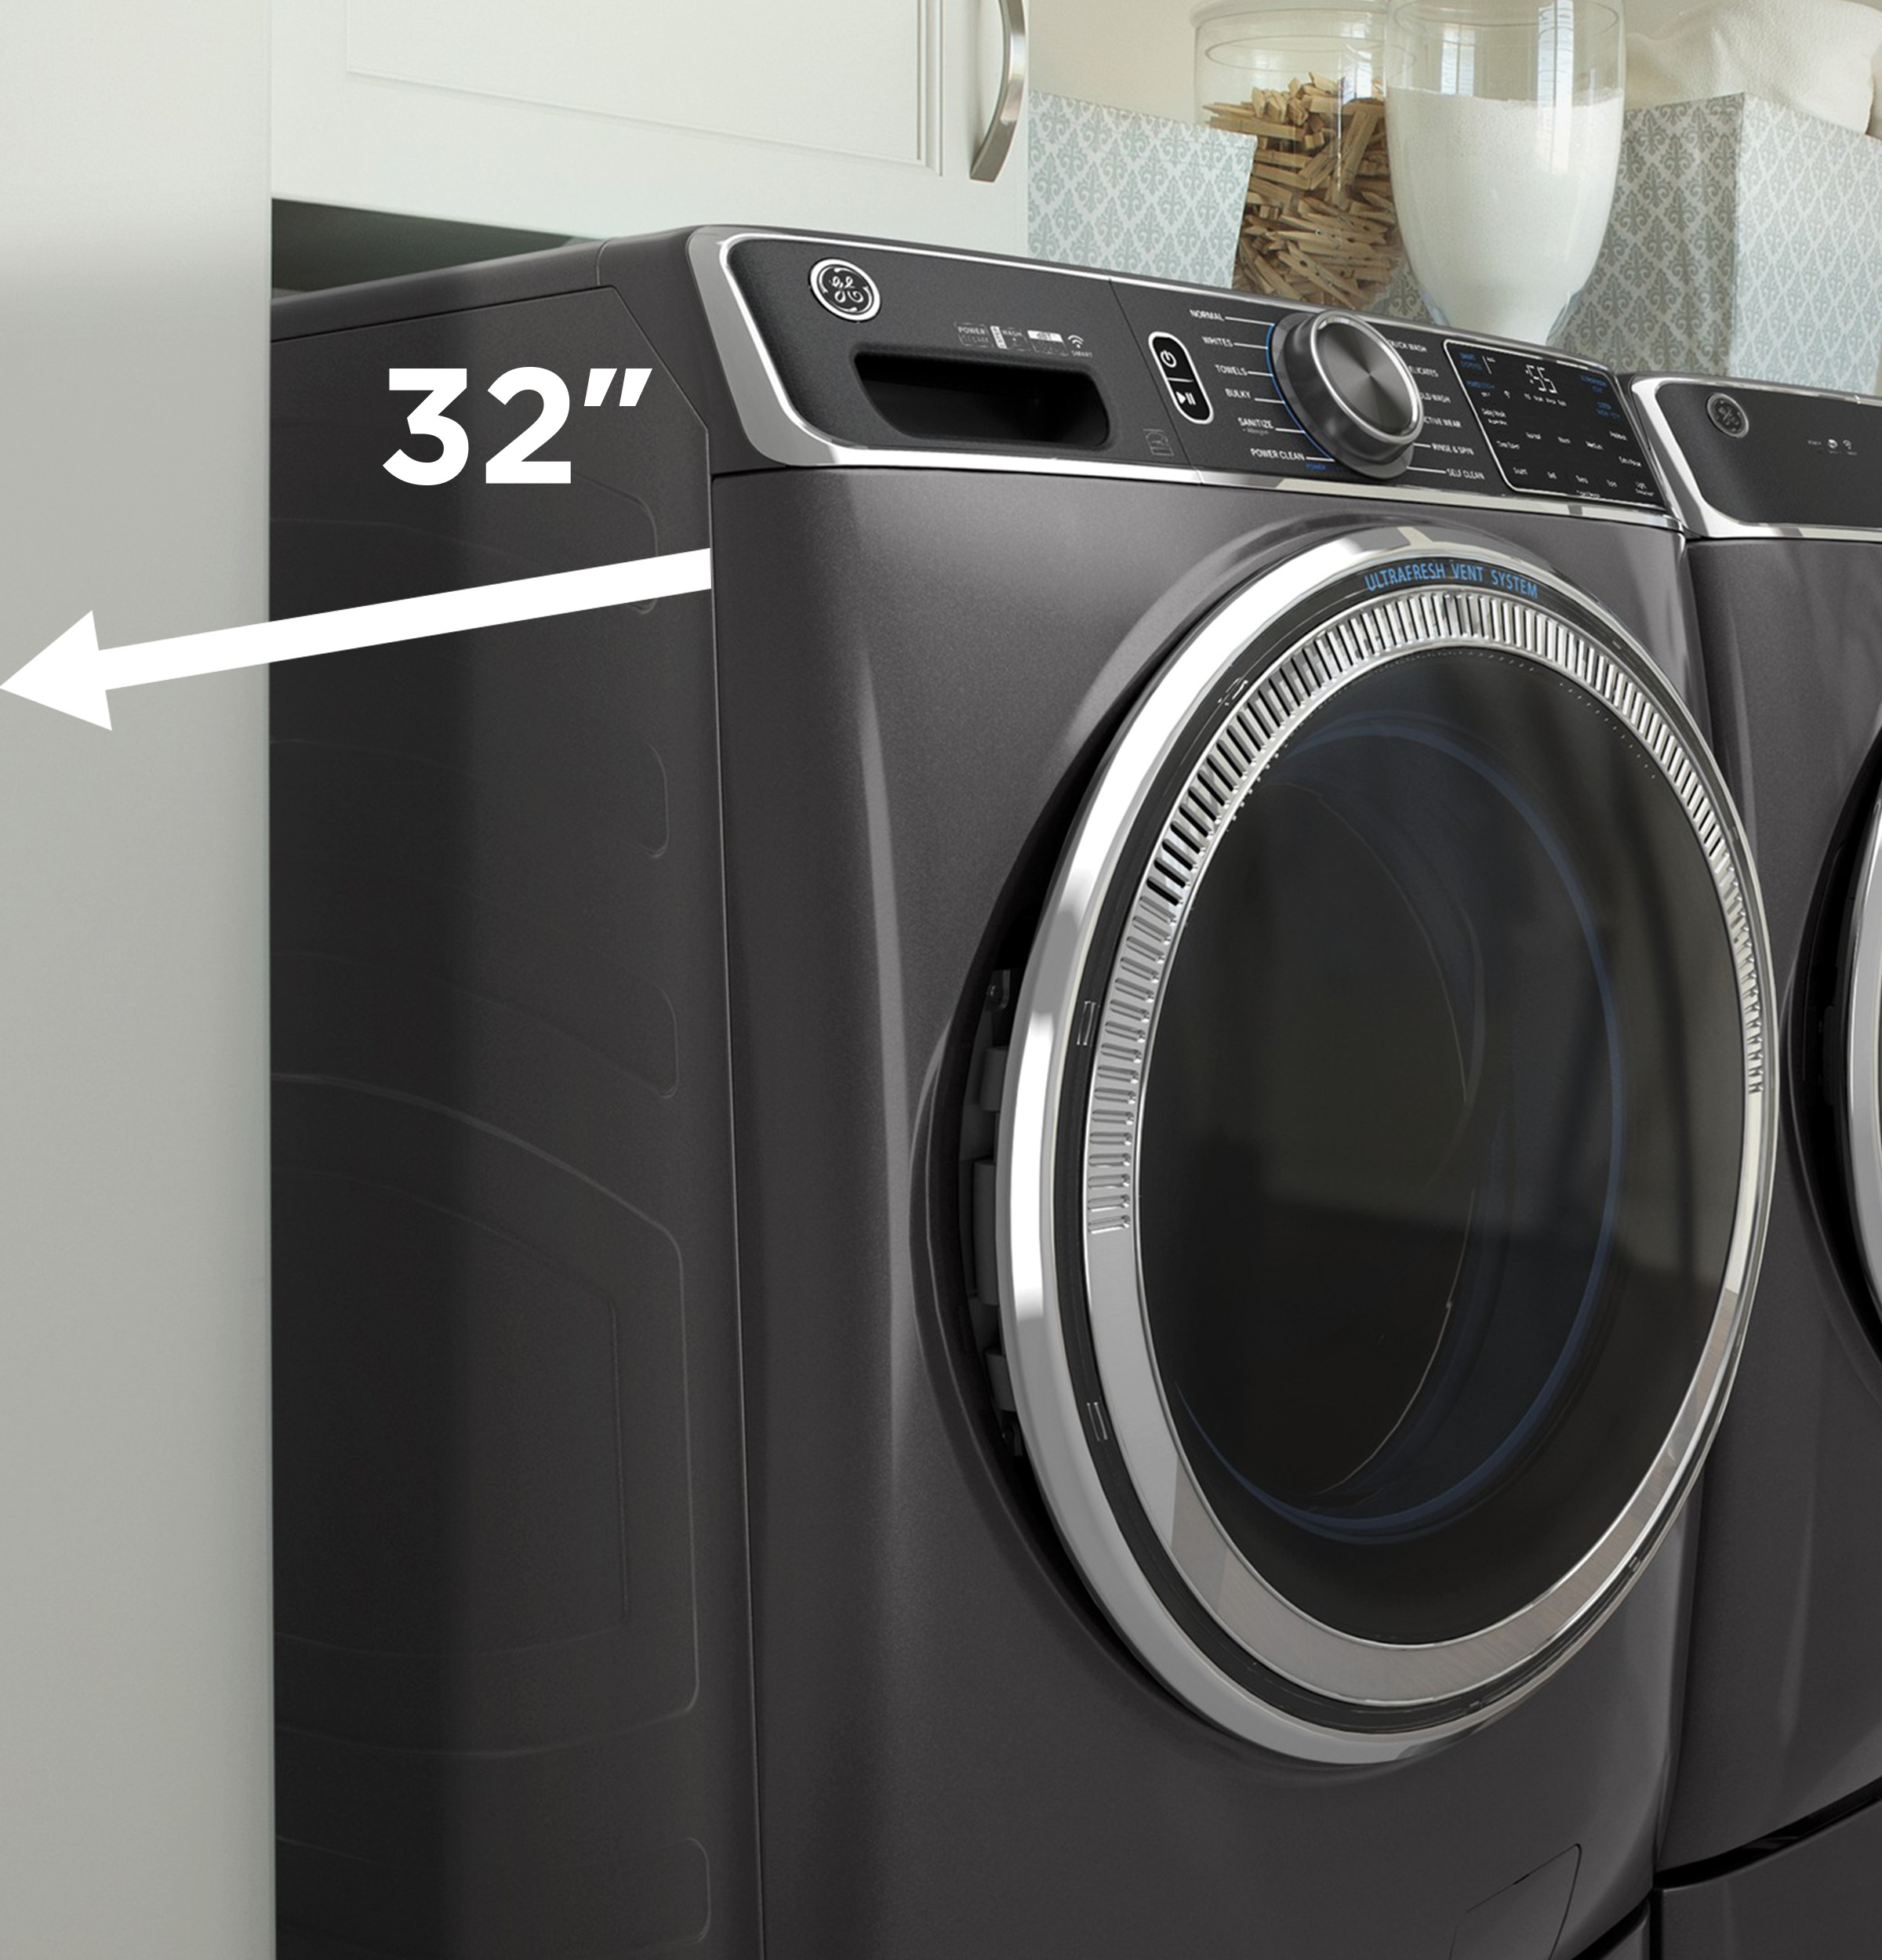 Model: GFW550SPNDG | GE GE® 4.8 cu. ft. Capacity Smart Front Load ENERGY STAR® Washer with UltraFresh Vent System with OdorBlock™ and Sanitize w/Oxi